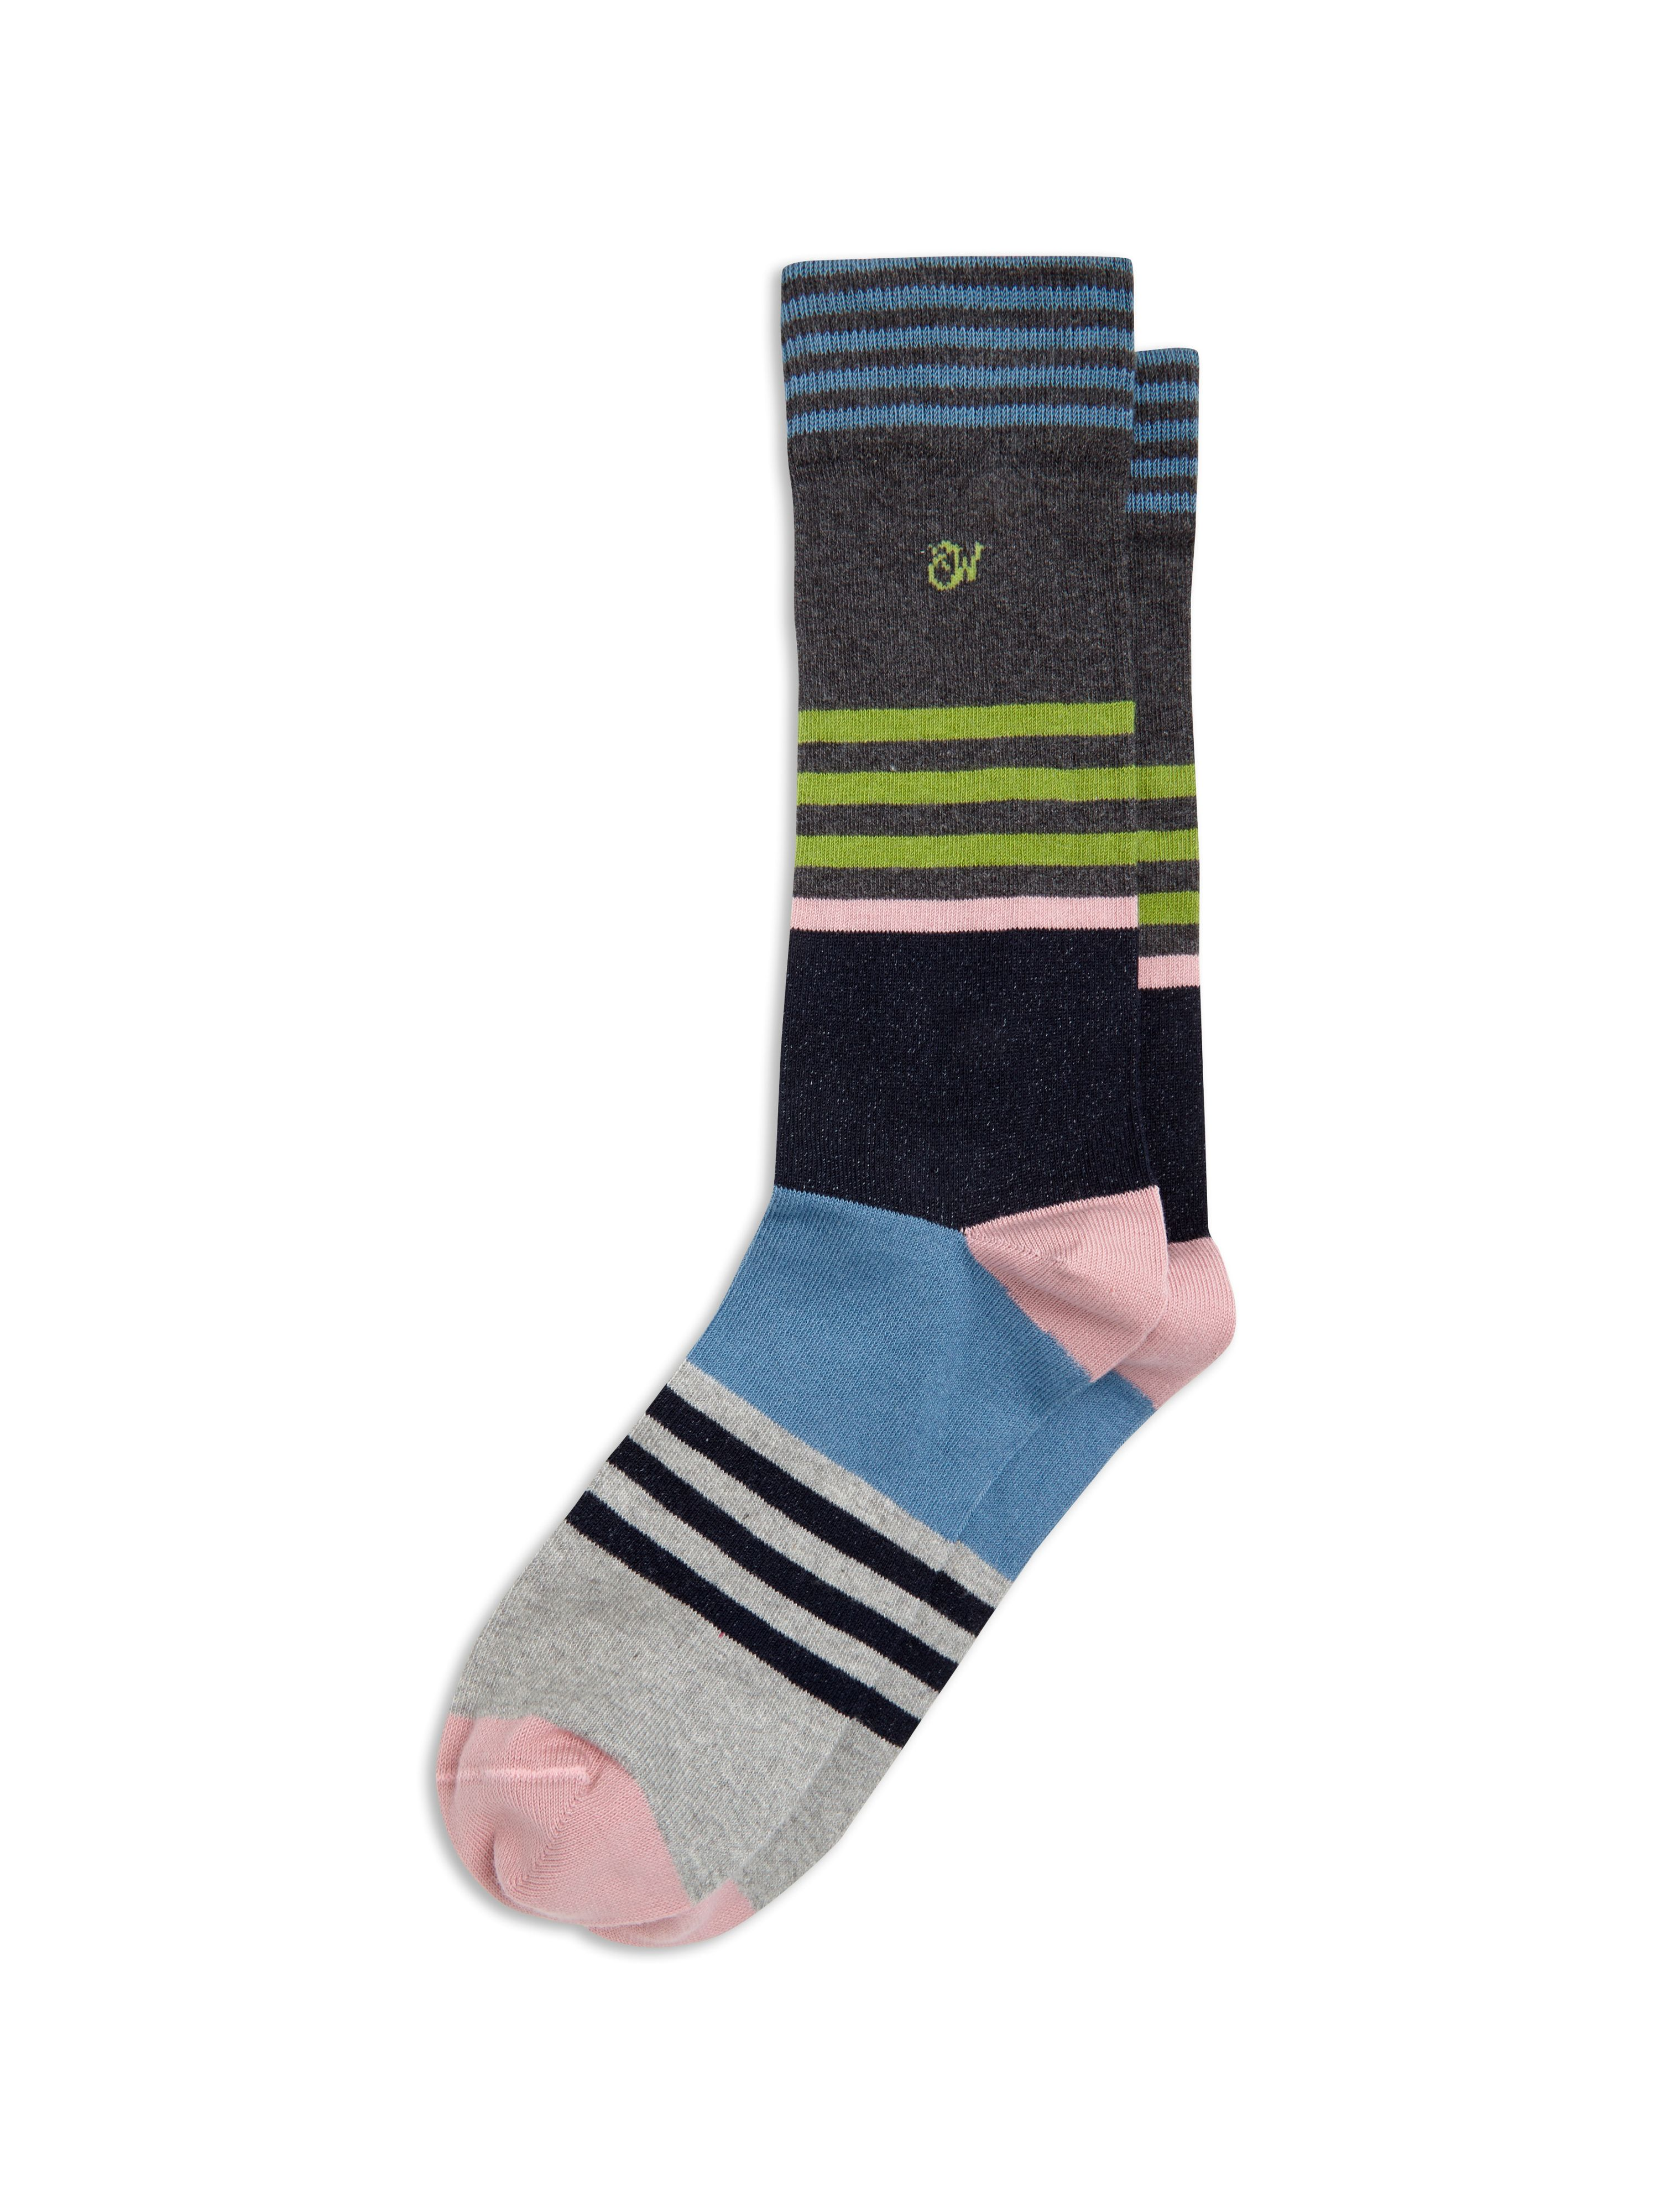 Franco stripe socks